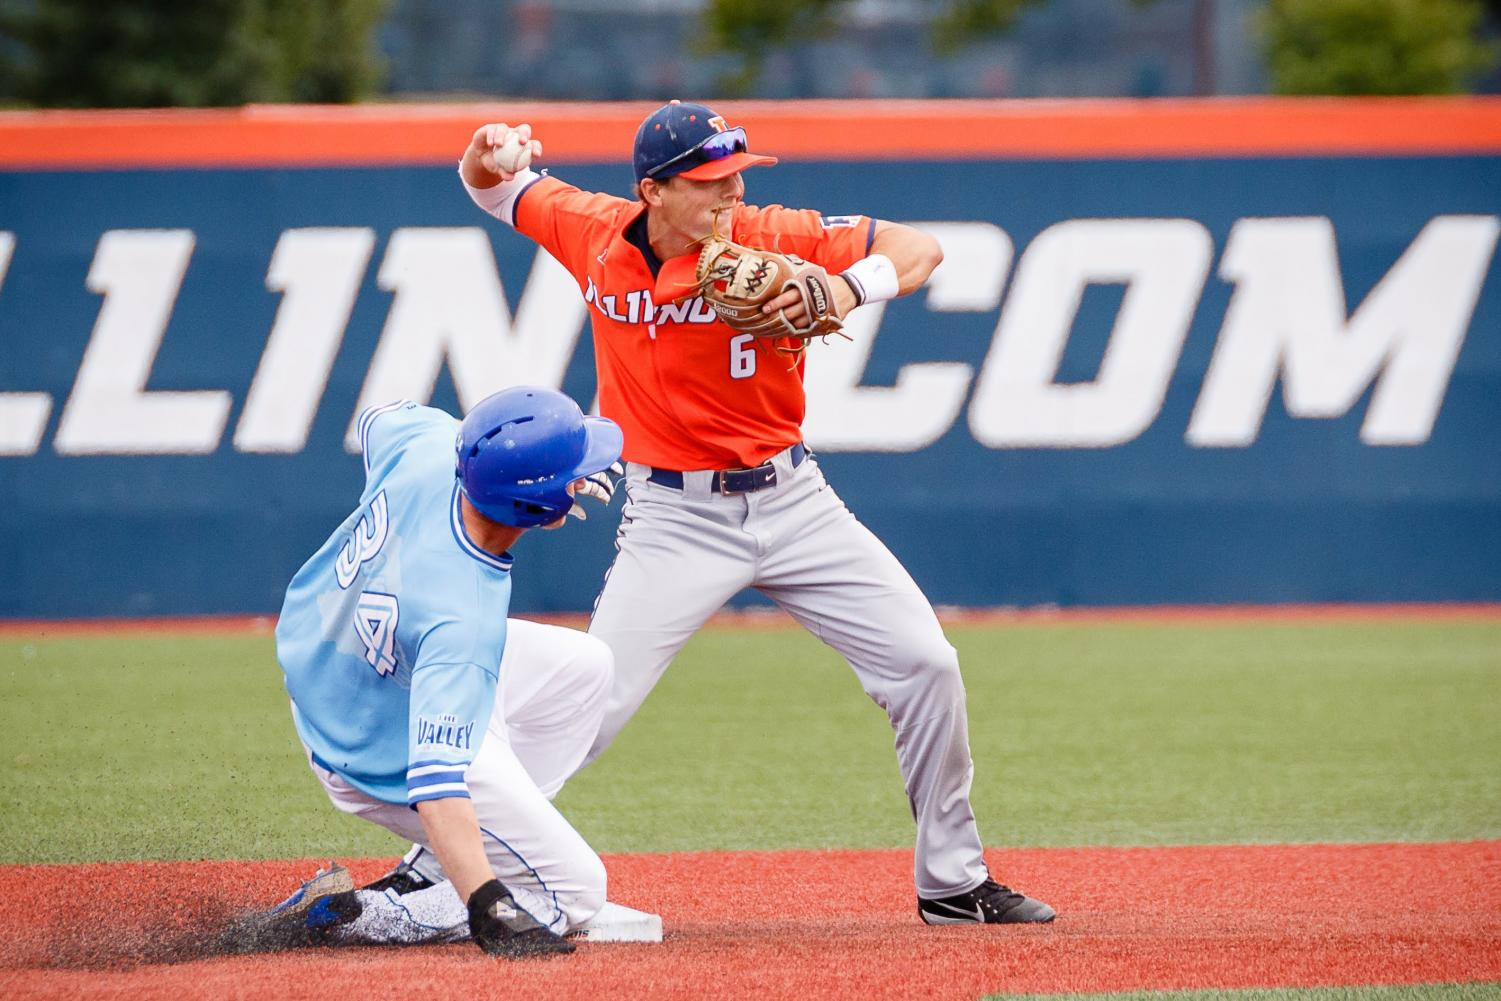 Illinois second baseman Michael Massey throws the ball to first for a double play during the exhibition game against Indiana State at Illinois Field on Sept. 22. The Illini tied 5-5. Massey was placed in the top-10 Big Ten Division I MLB Prospect list with several other Illini players.